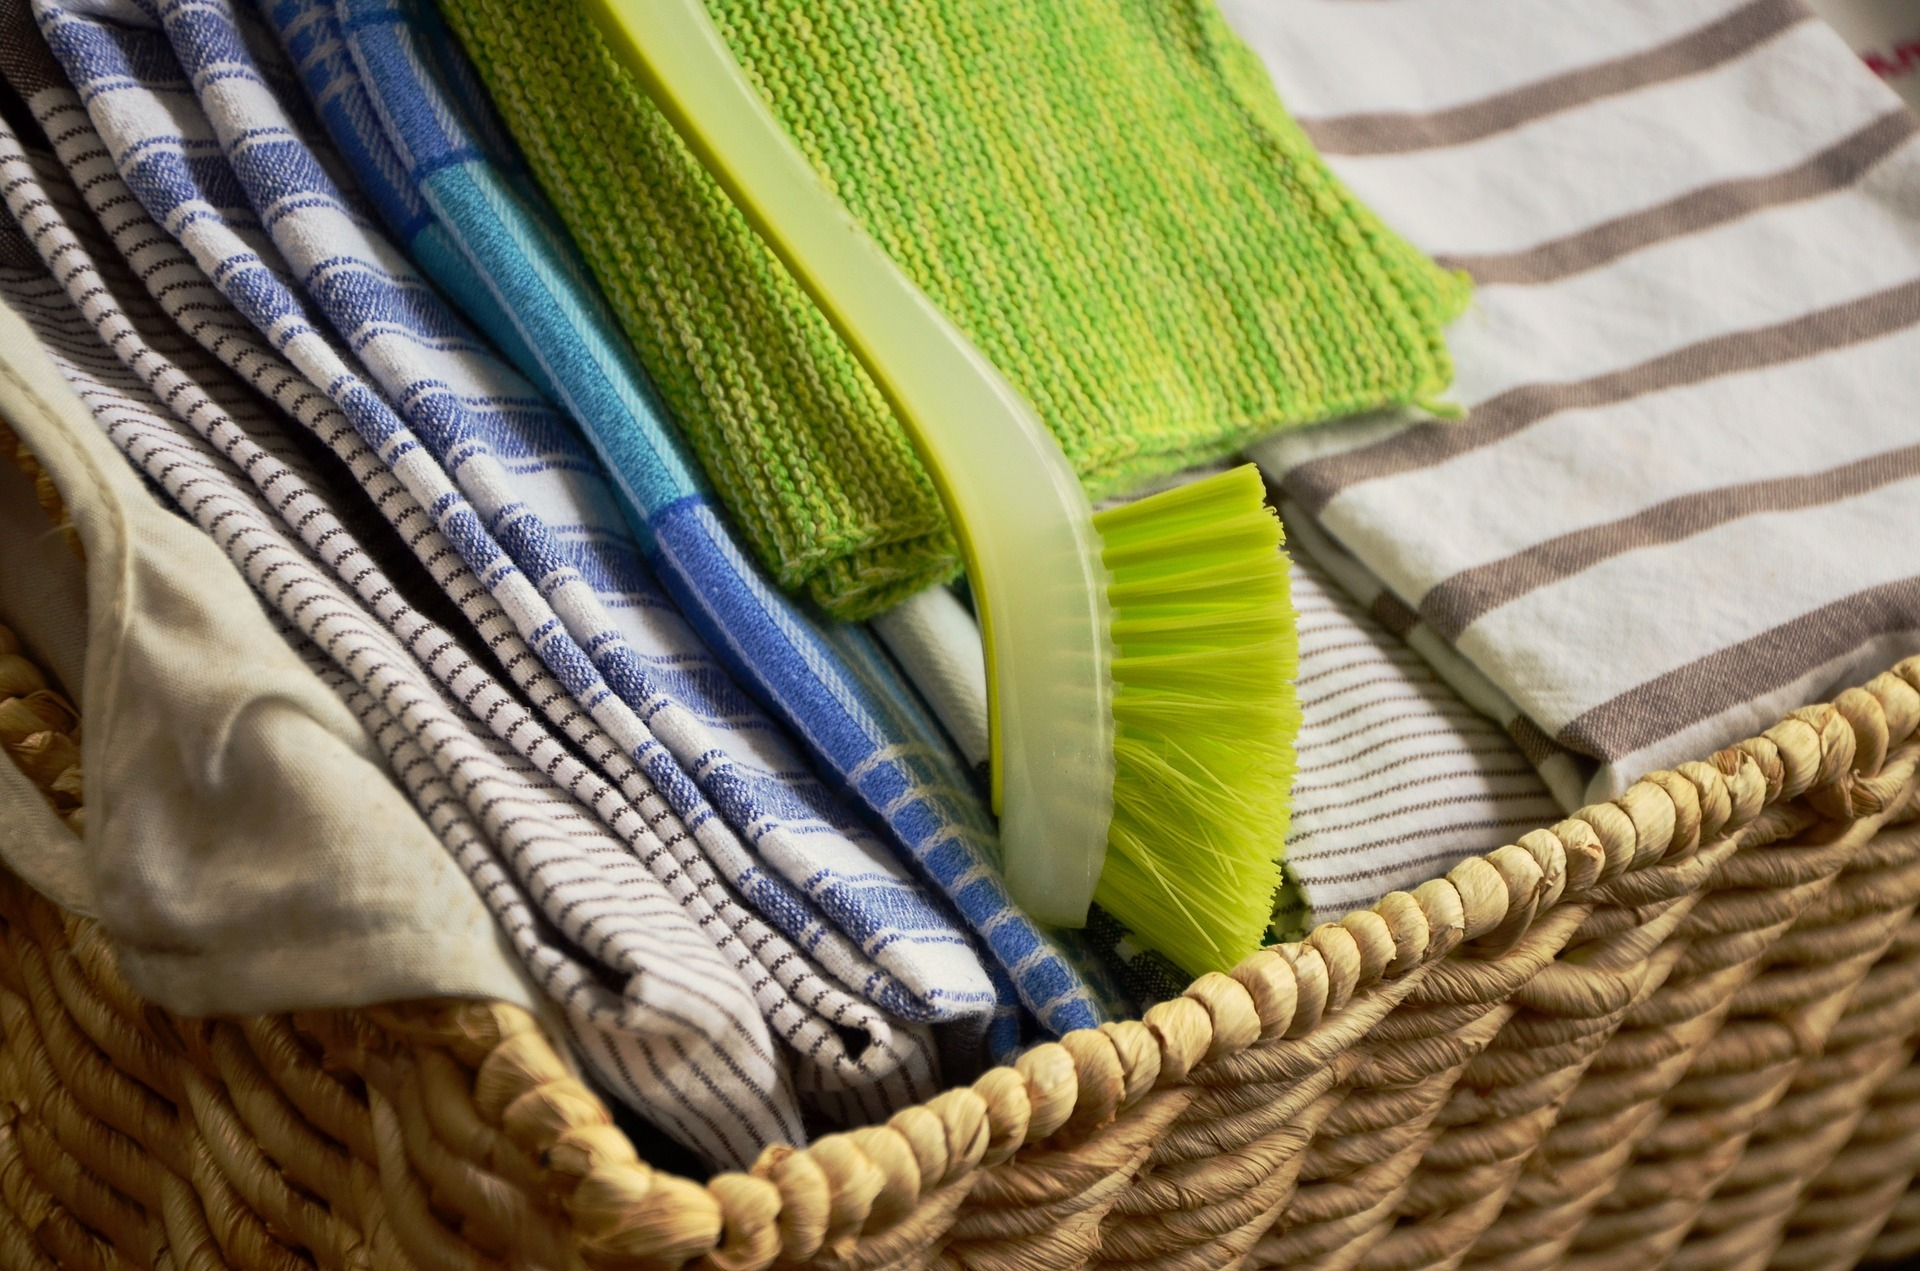 inside the basket are sets of kitchen towel and a green brush